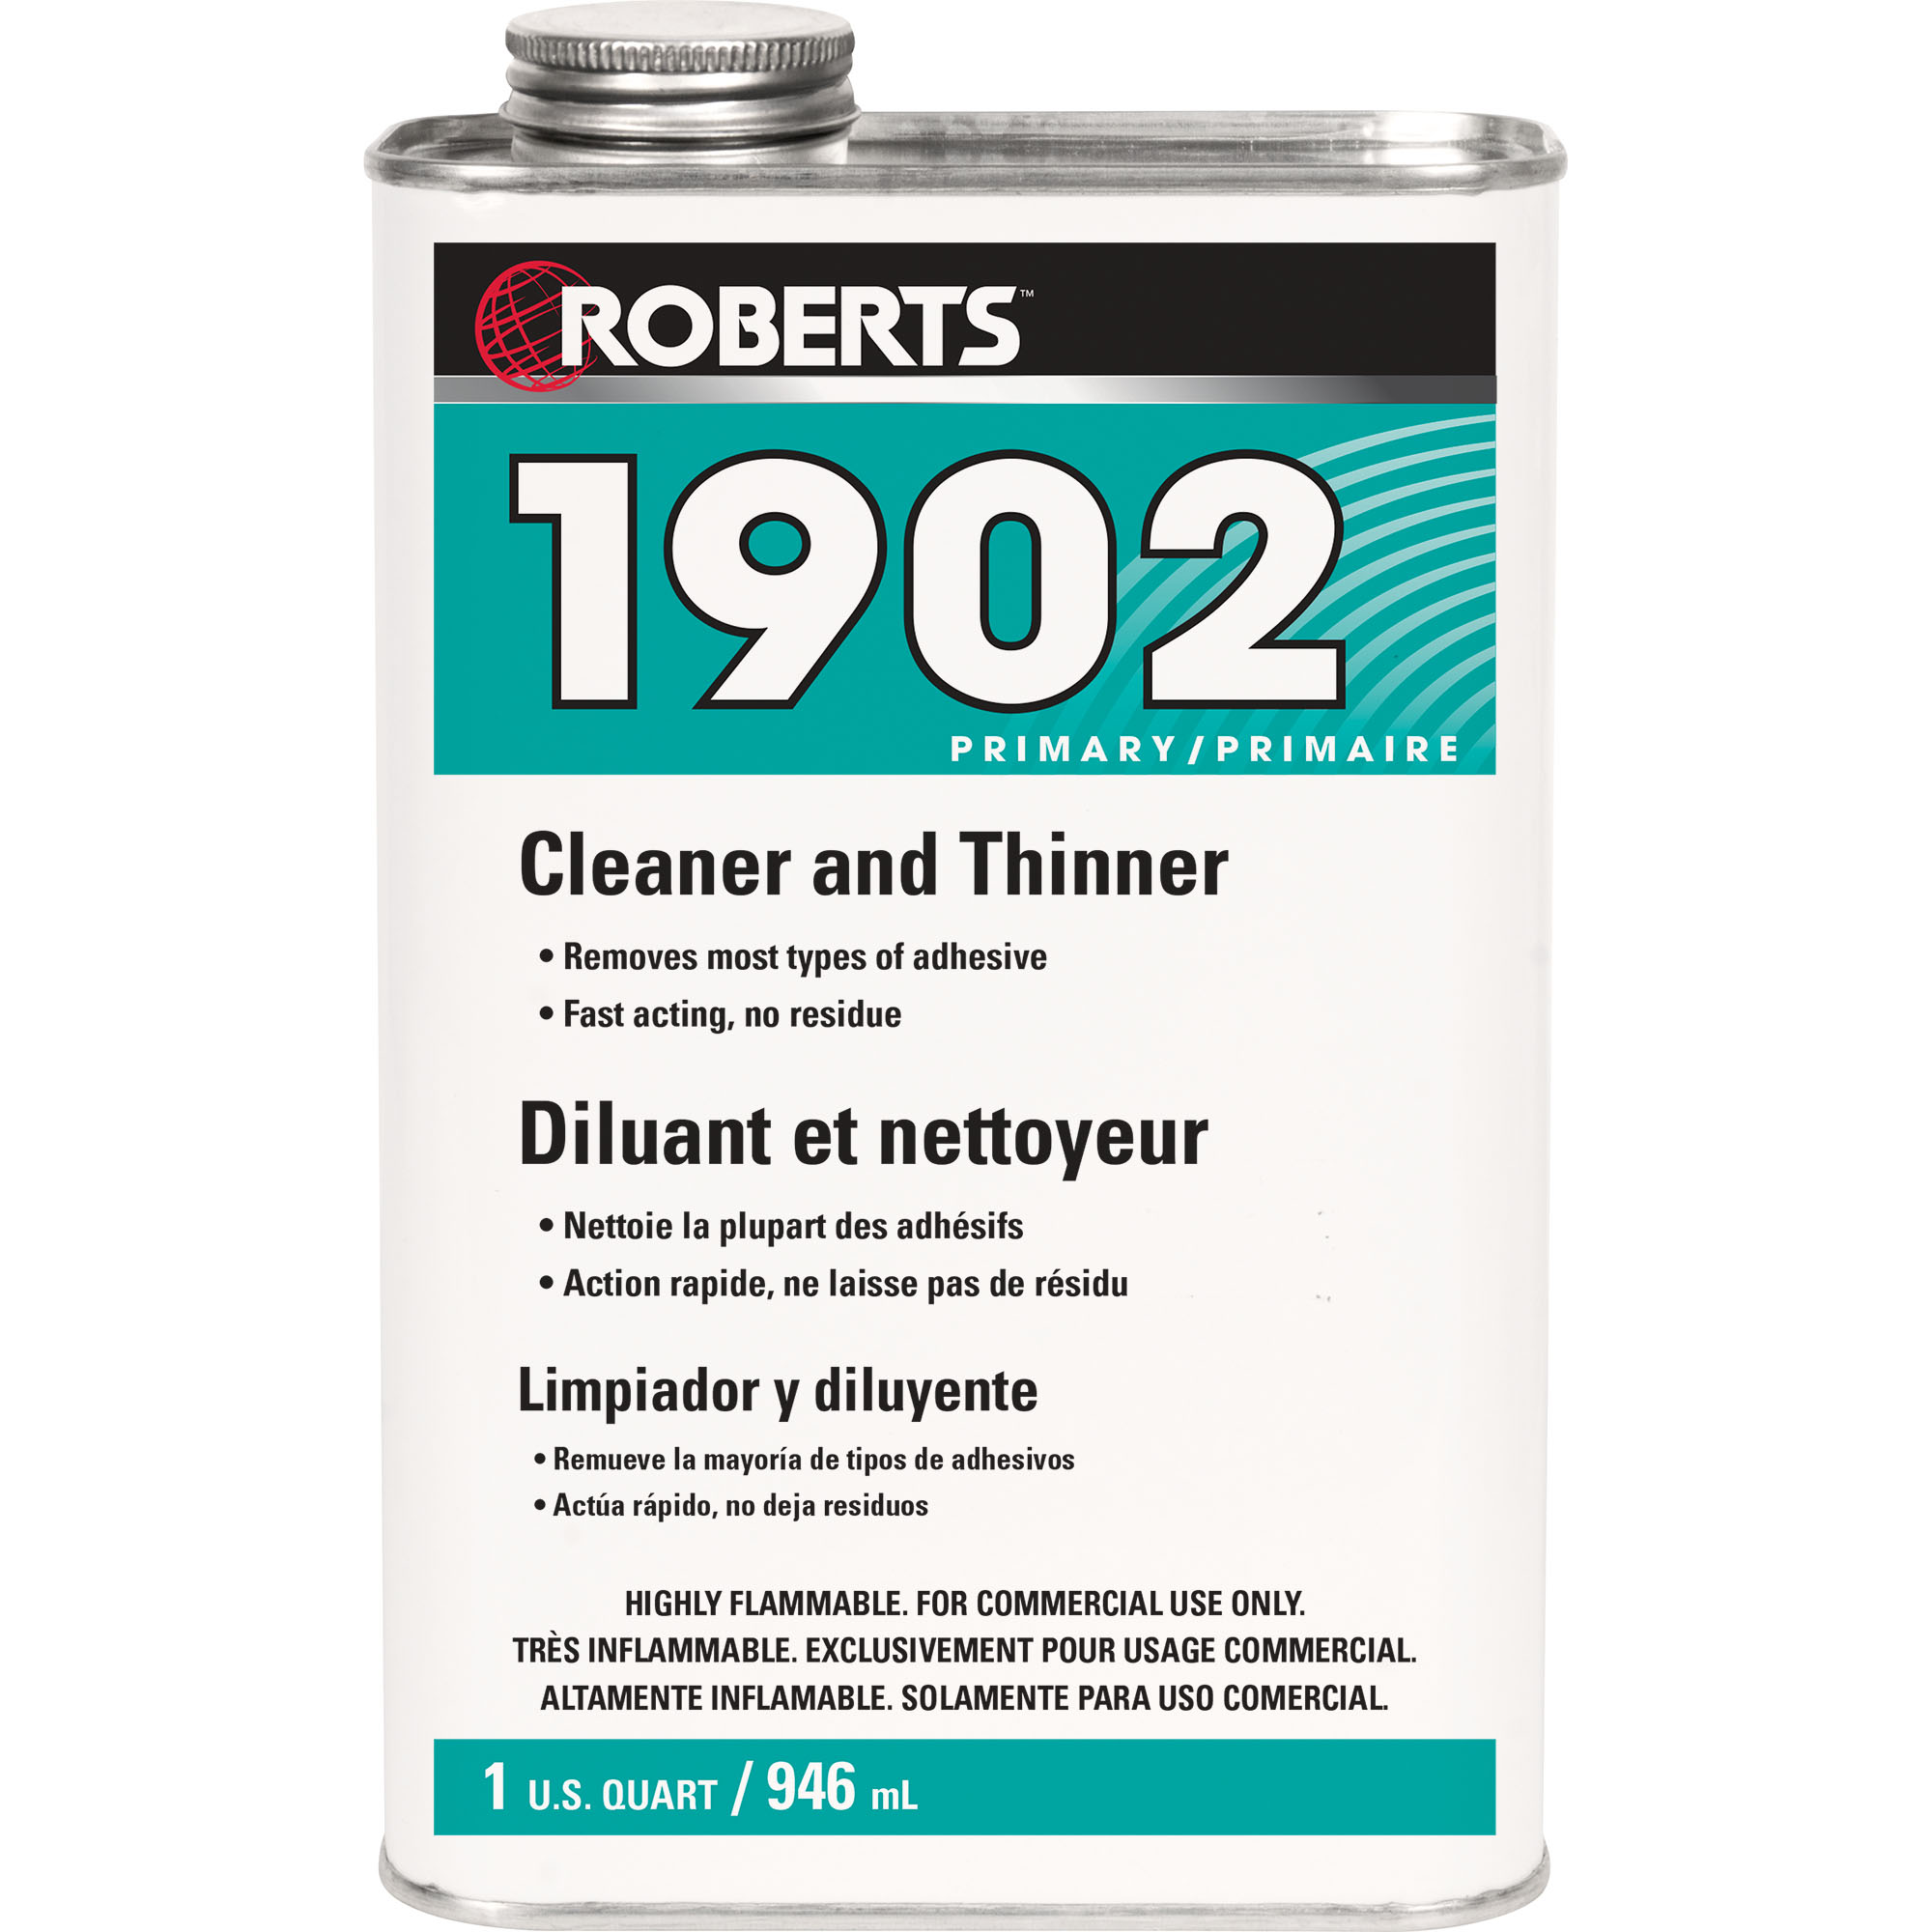 <br><em>(DISCONTINUED)</em></br>Cleaner and Thinner